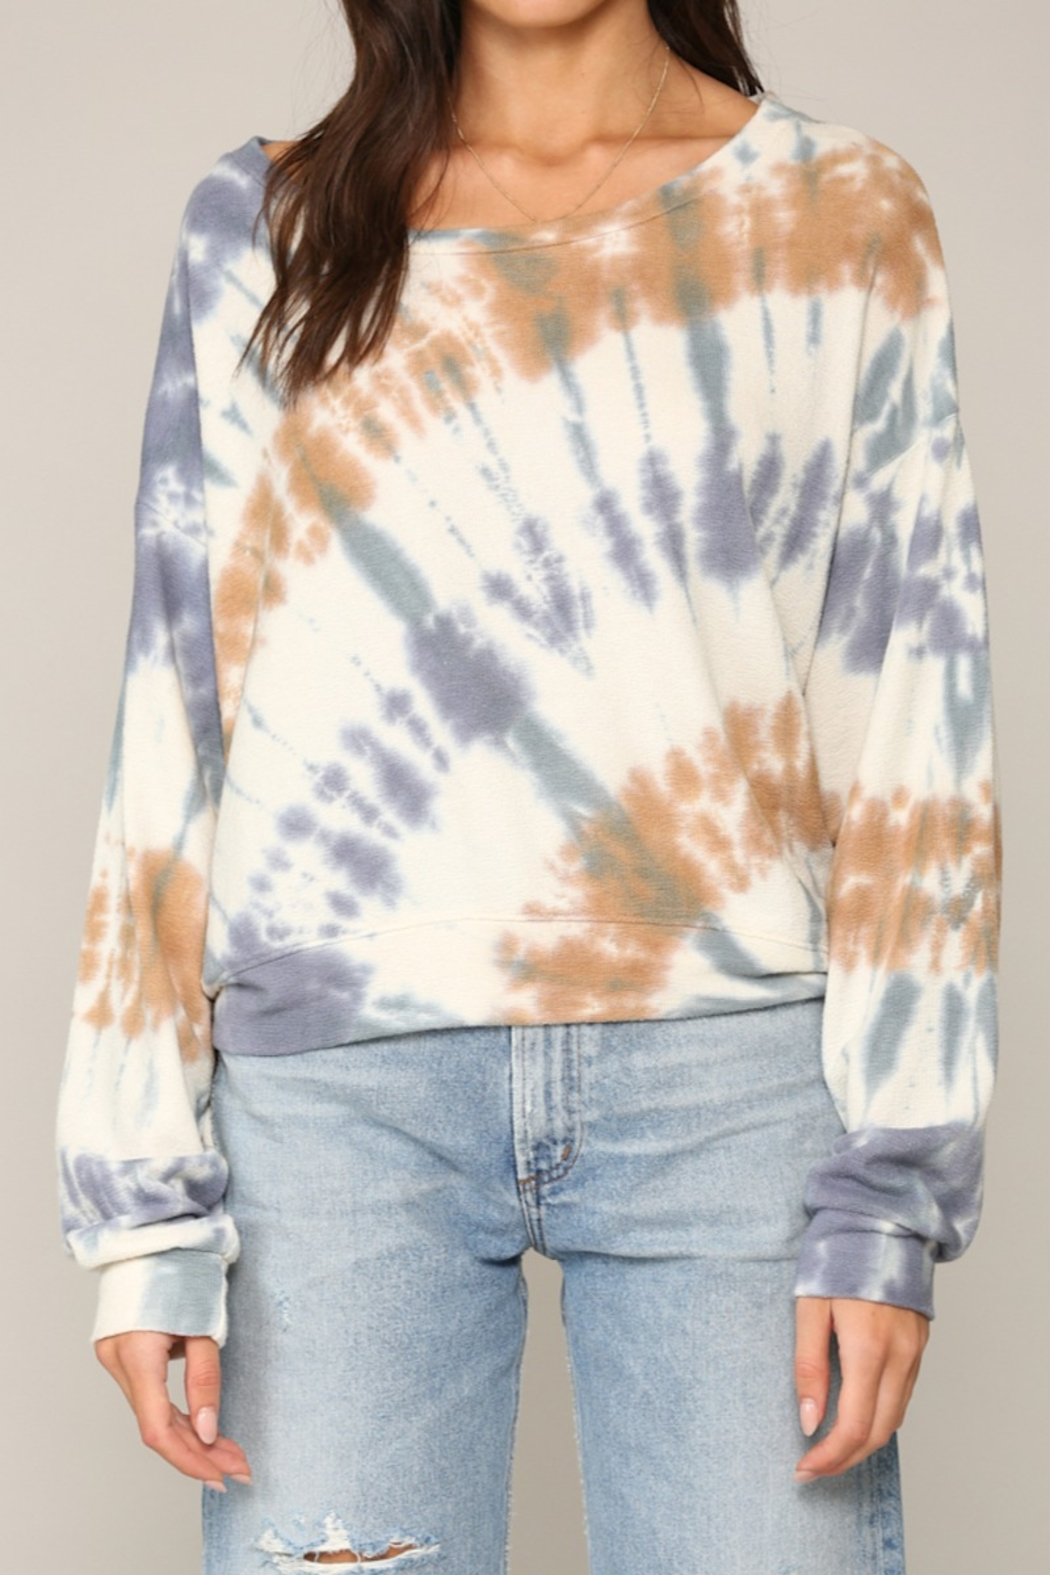 Blank Paige Arced TieDye Top - Front Cropped Image